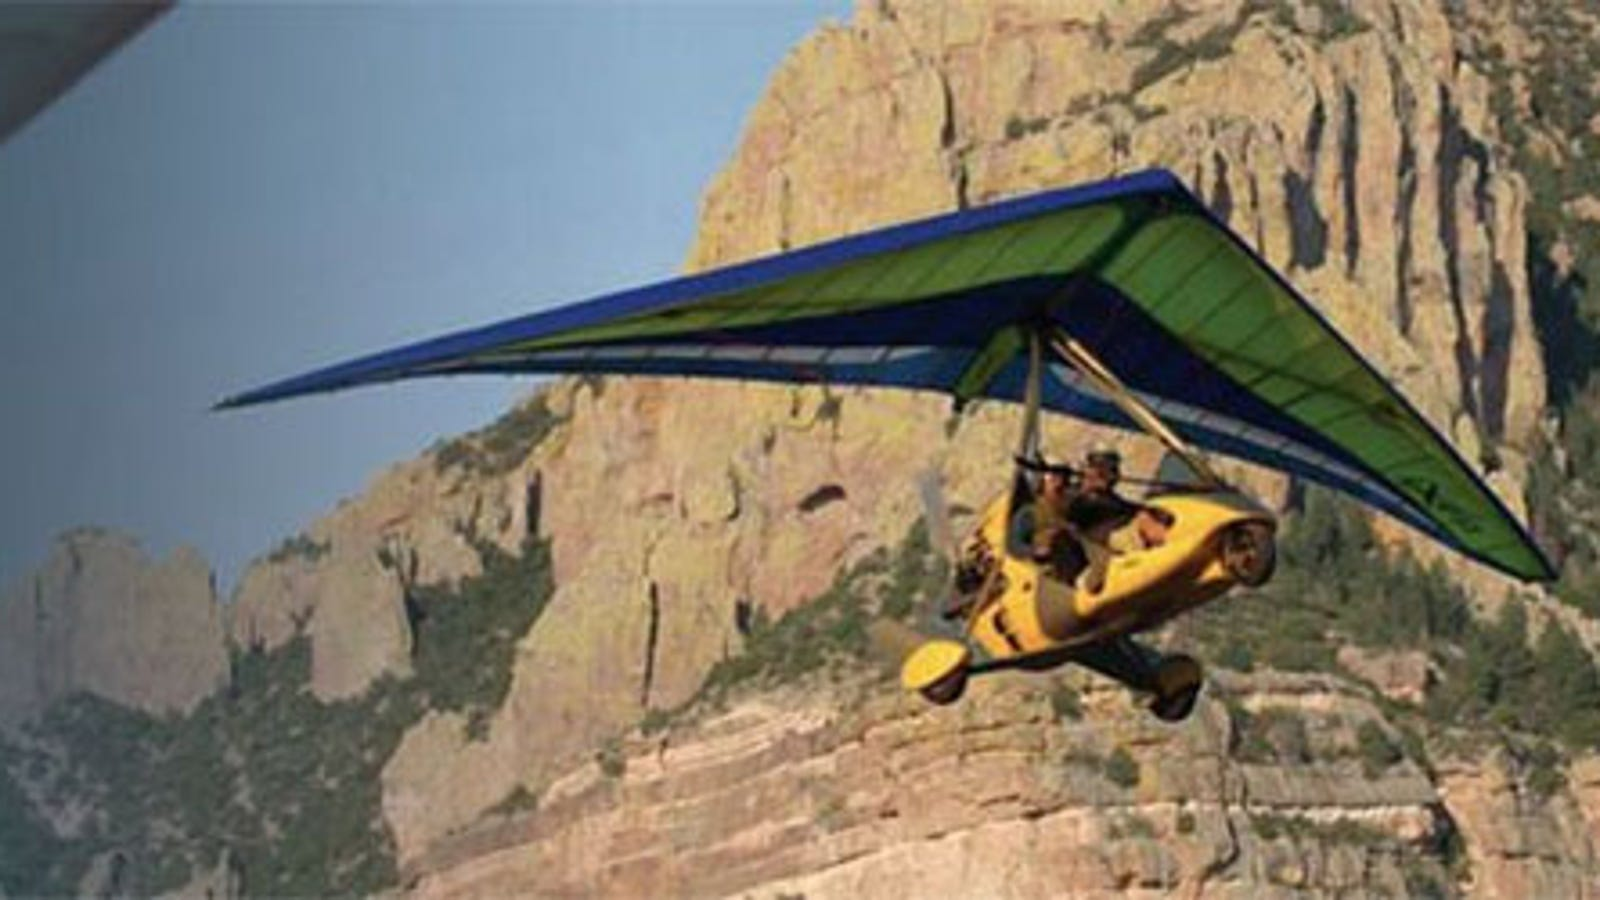 Two-Seated Flying Machine Sounds Like the Perfect Daredevil Date